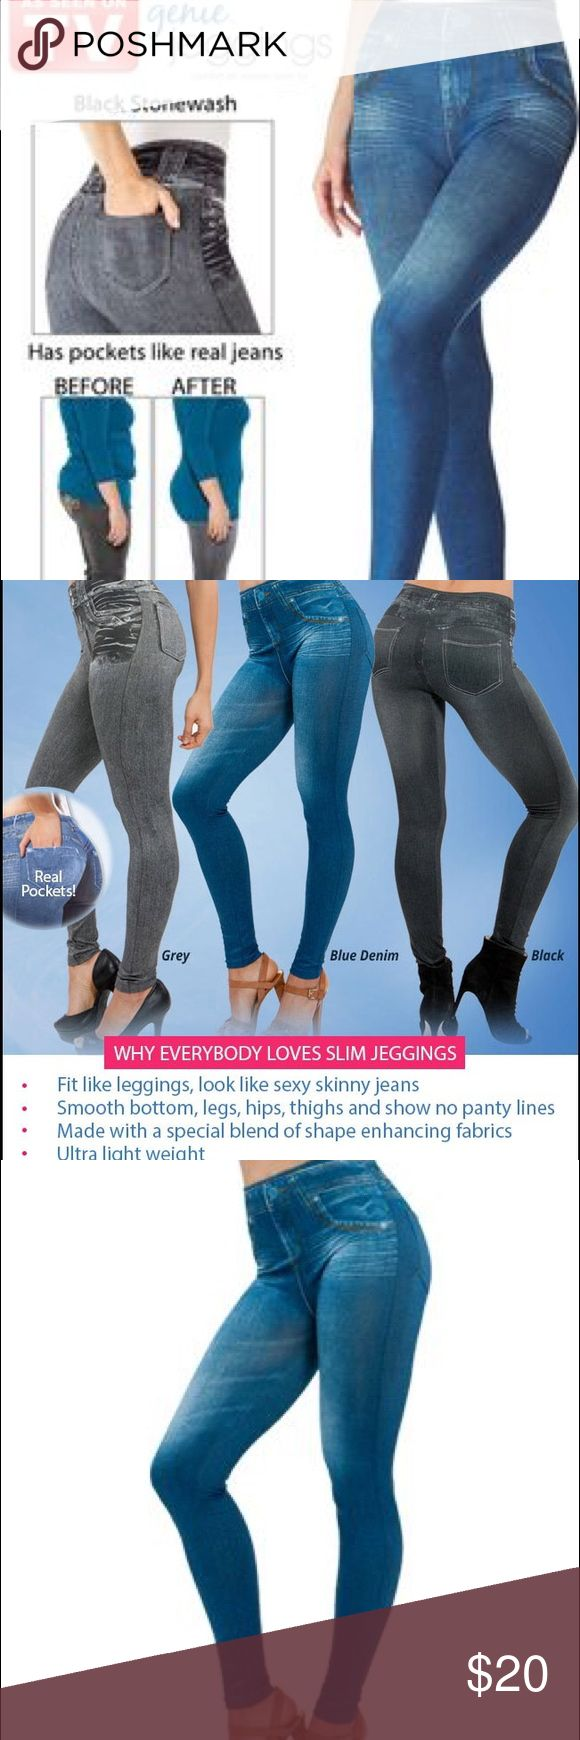 Set of two Genie Pajama Jeans Jeggings Shaping Stop sucking in your tummy to squeeze into your jeans.  Introducing Genie Slim Jeggings. They look like jeans but are as comfortable as leggings. Getting into skinny jeans has never been so easy and felt so good! One blue pair and one black pair can be bought separately or together. $10 each or $20 together. genie Jeans Skinny